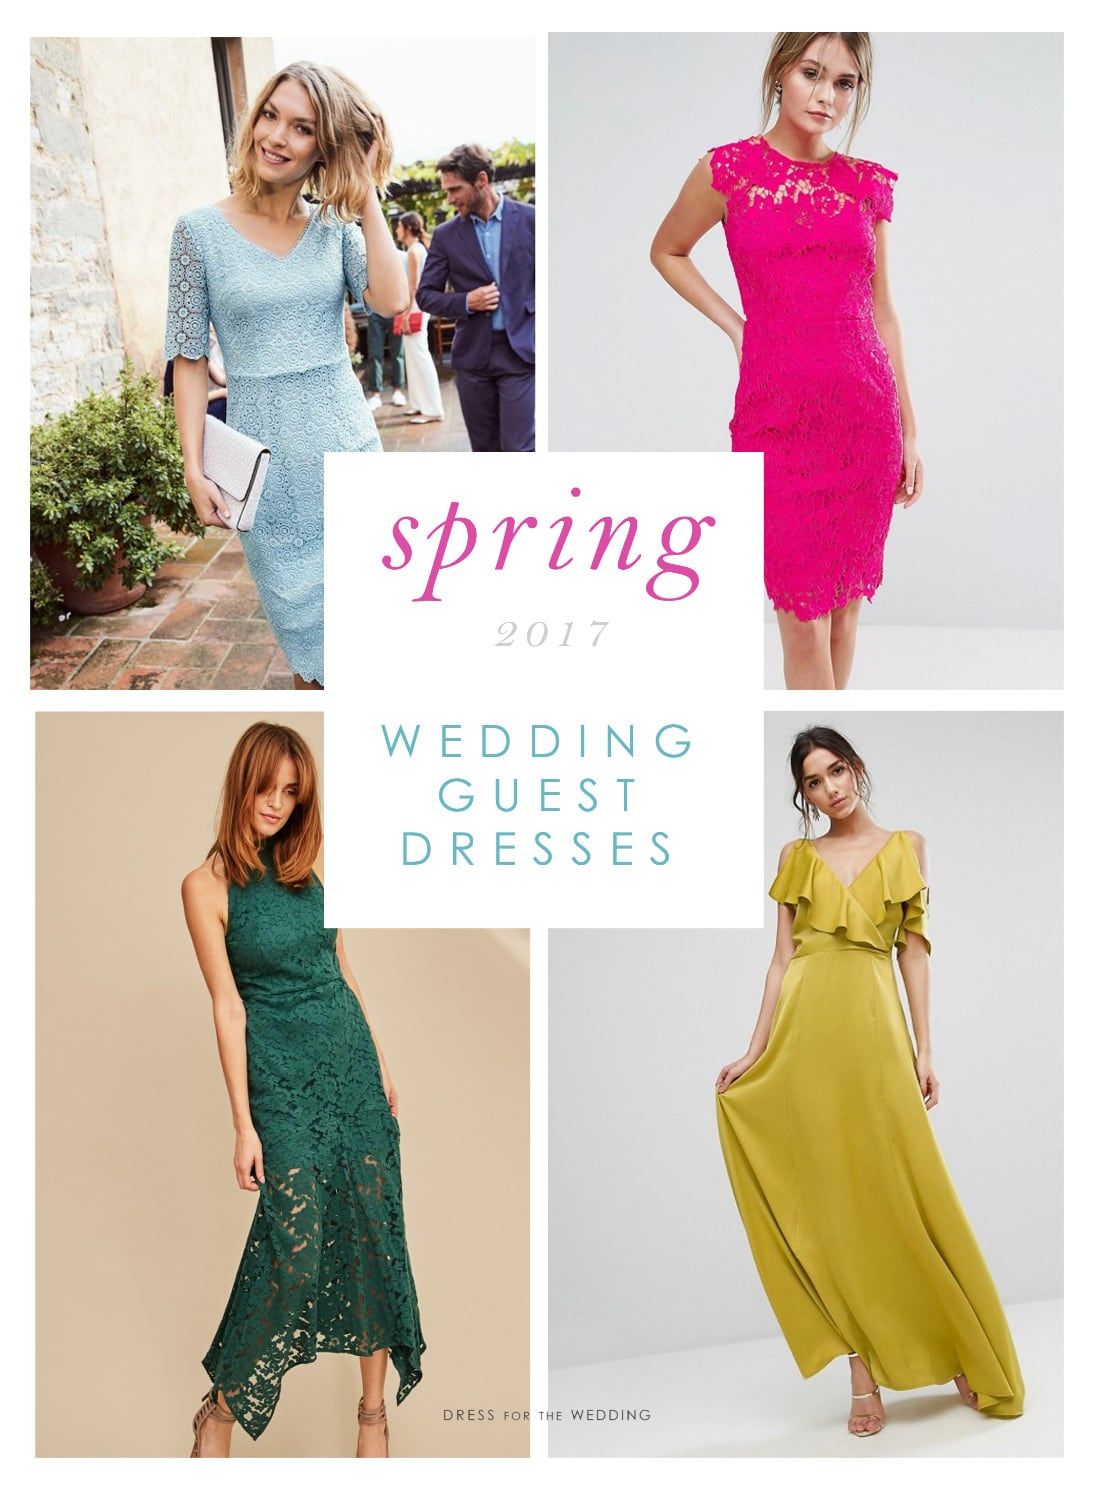 Beautiful dresses to wear as a wedding guest dress for for Dress for a spring wedding